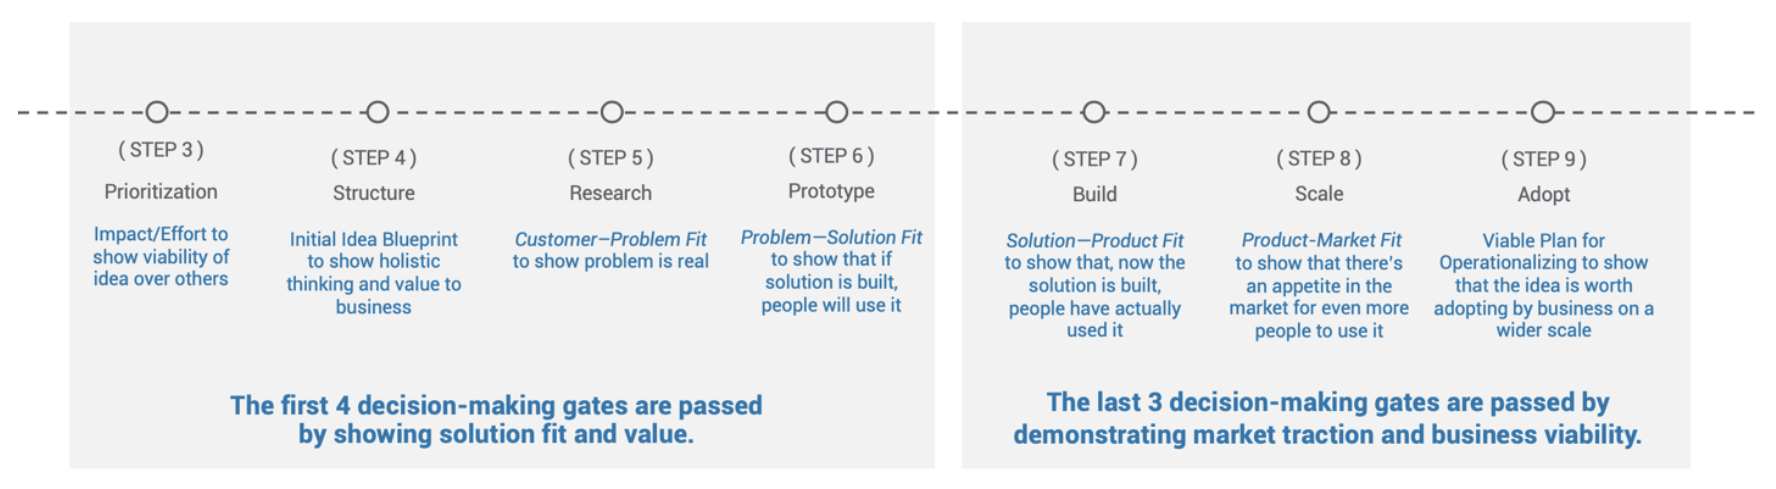 steps of the idea process (3-9)